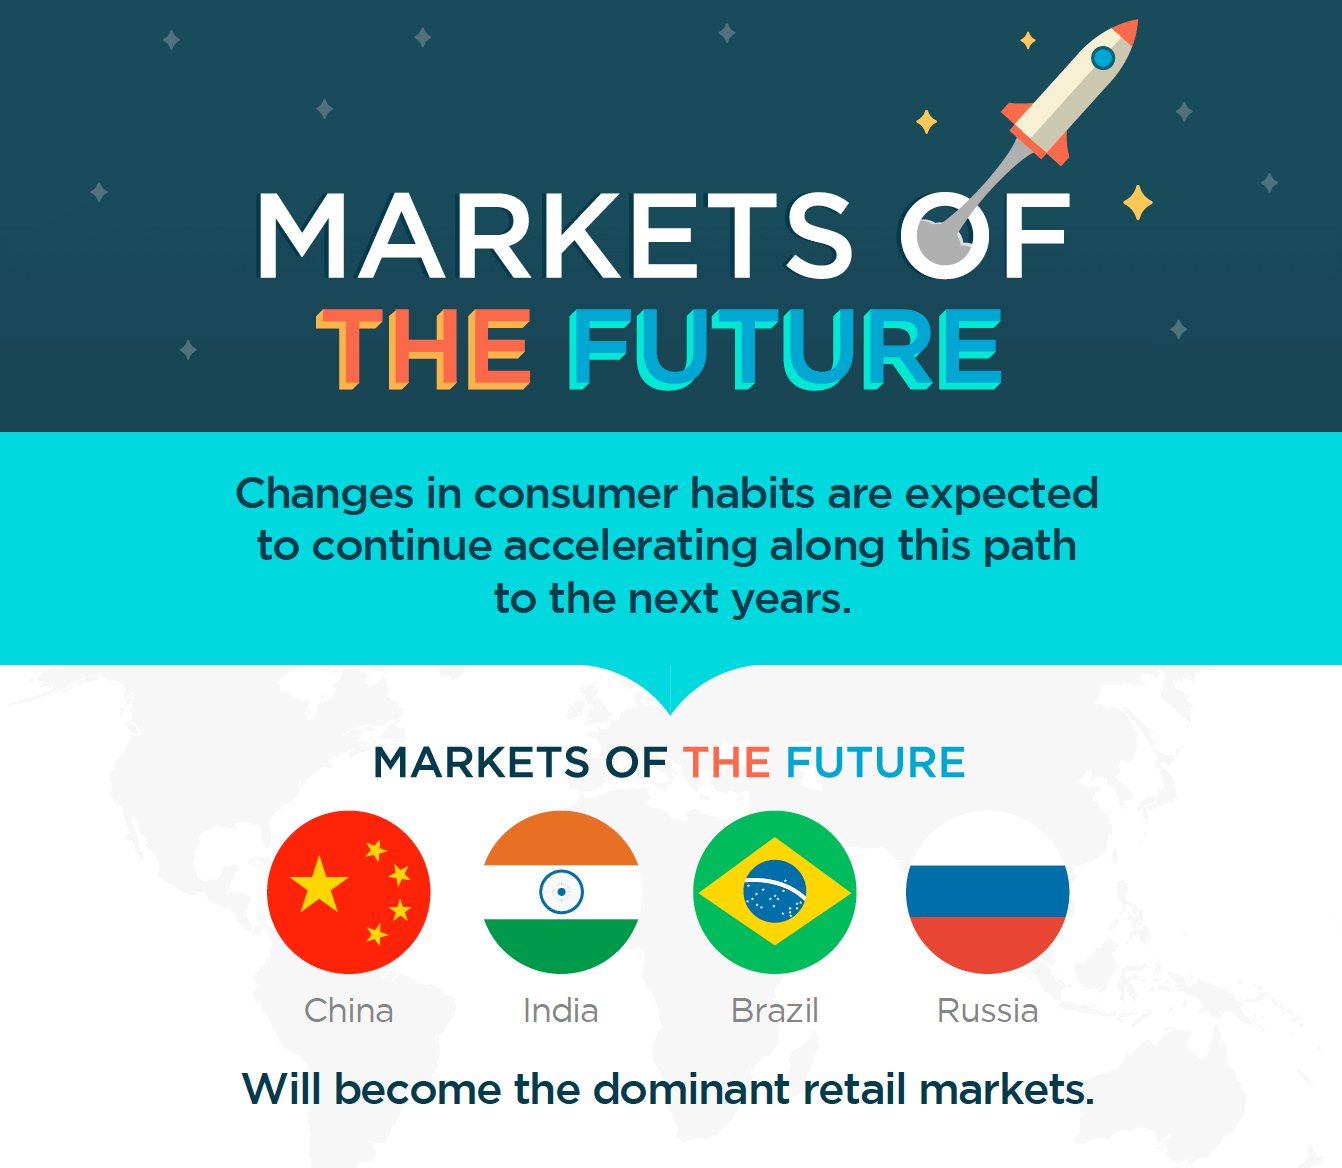 Infographic_Retail markets of the future_EN.png